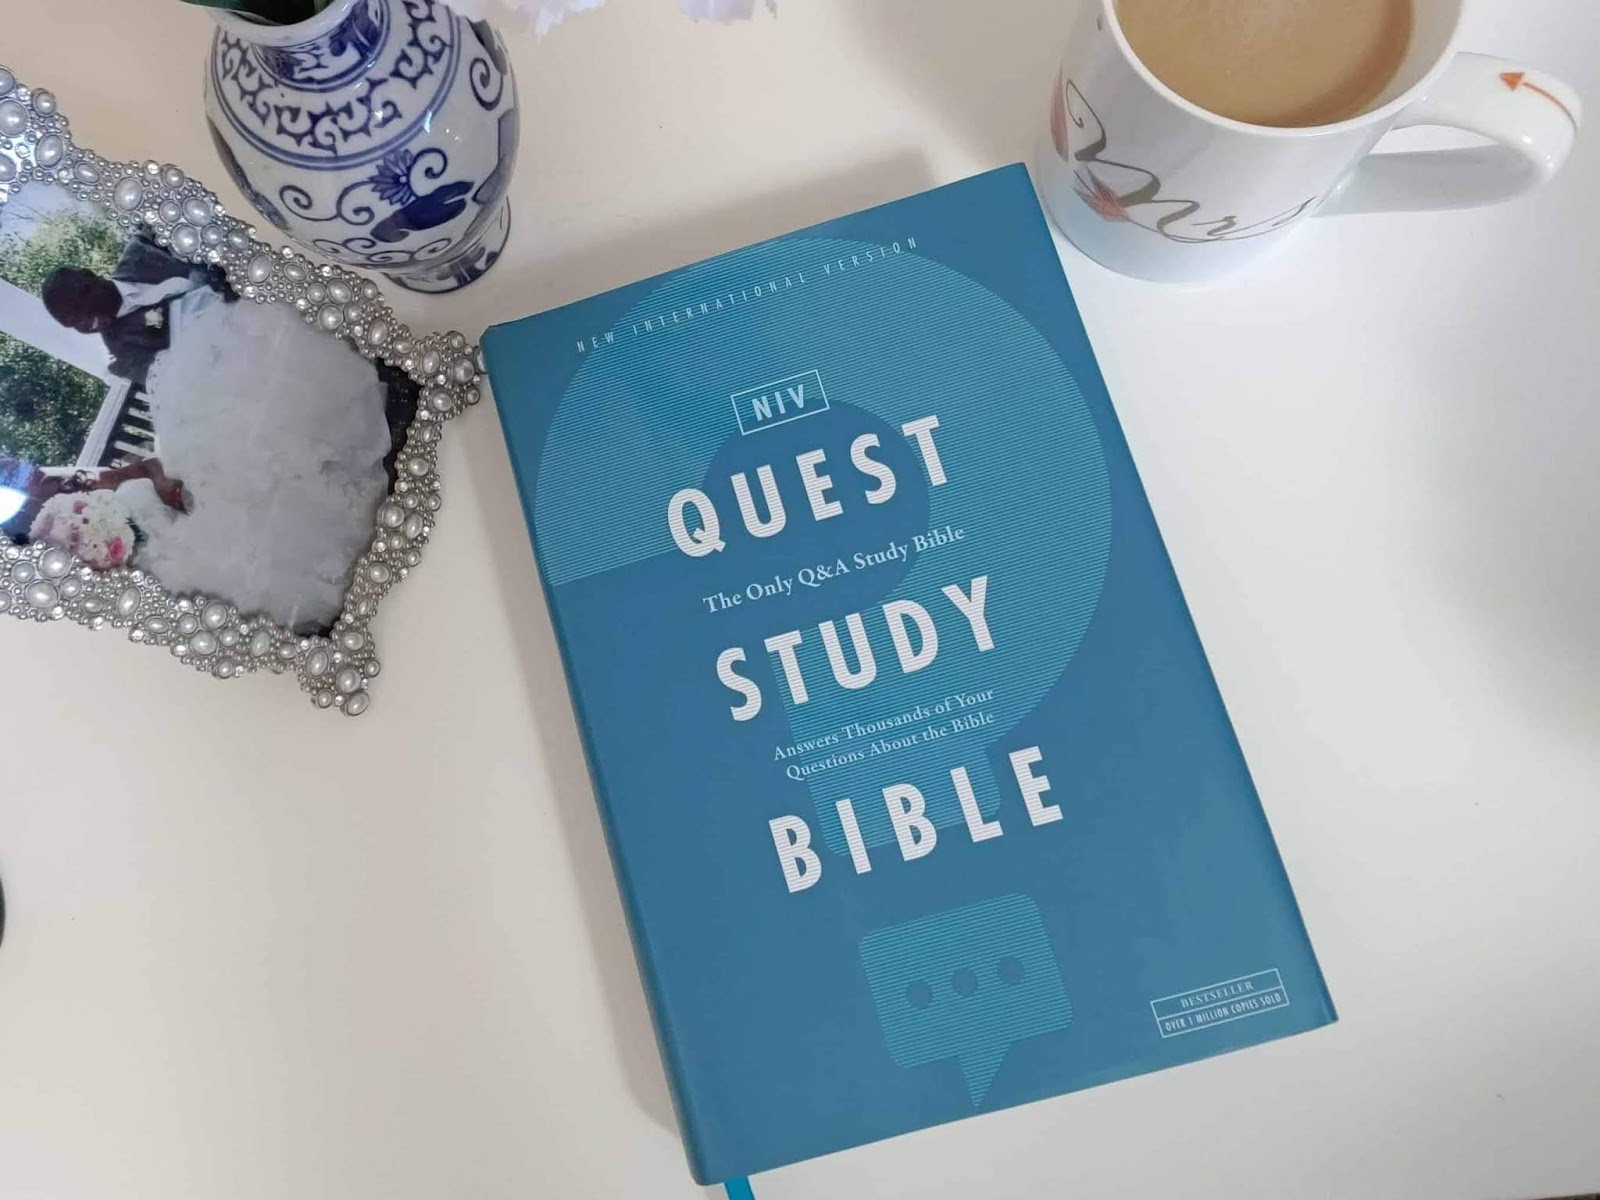 How To Study The Bible | dig into God's word | Bible study ideas | grow in your faith | Bible Study Methods | Spiritual growth #biblestudy #faithbuilding #spiritualgrowth